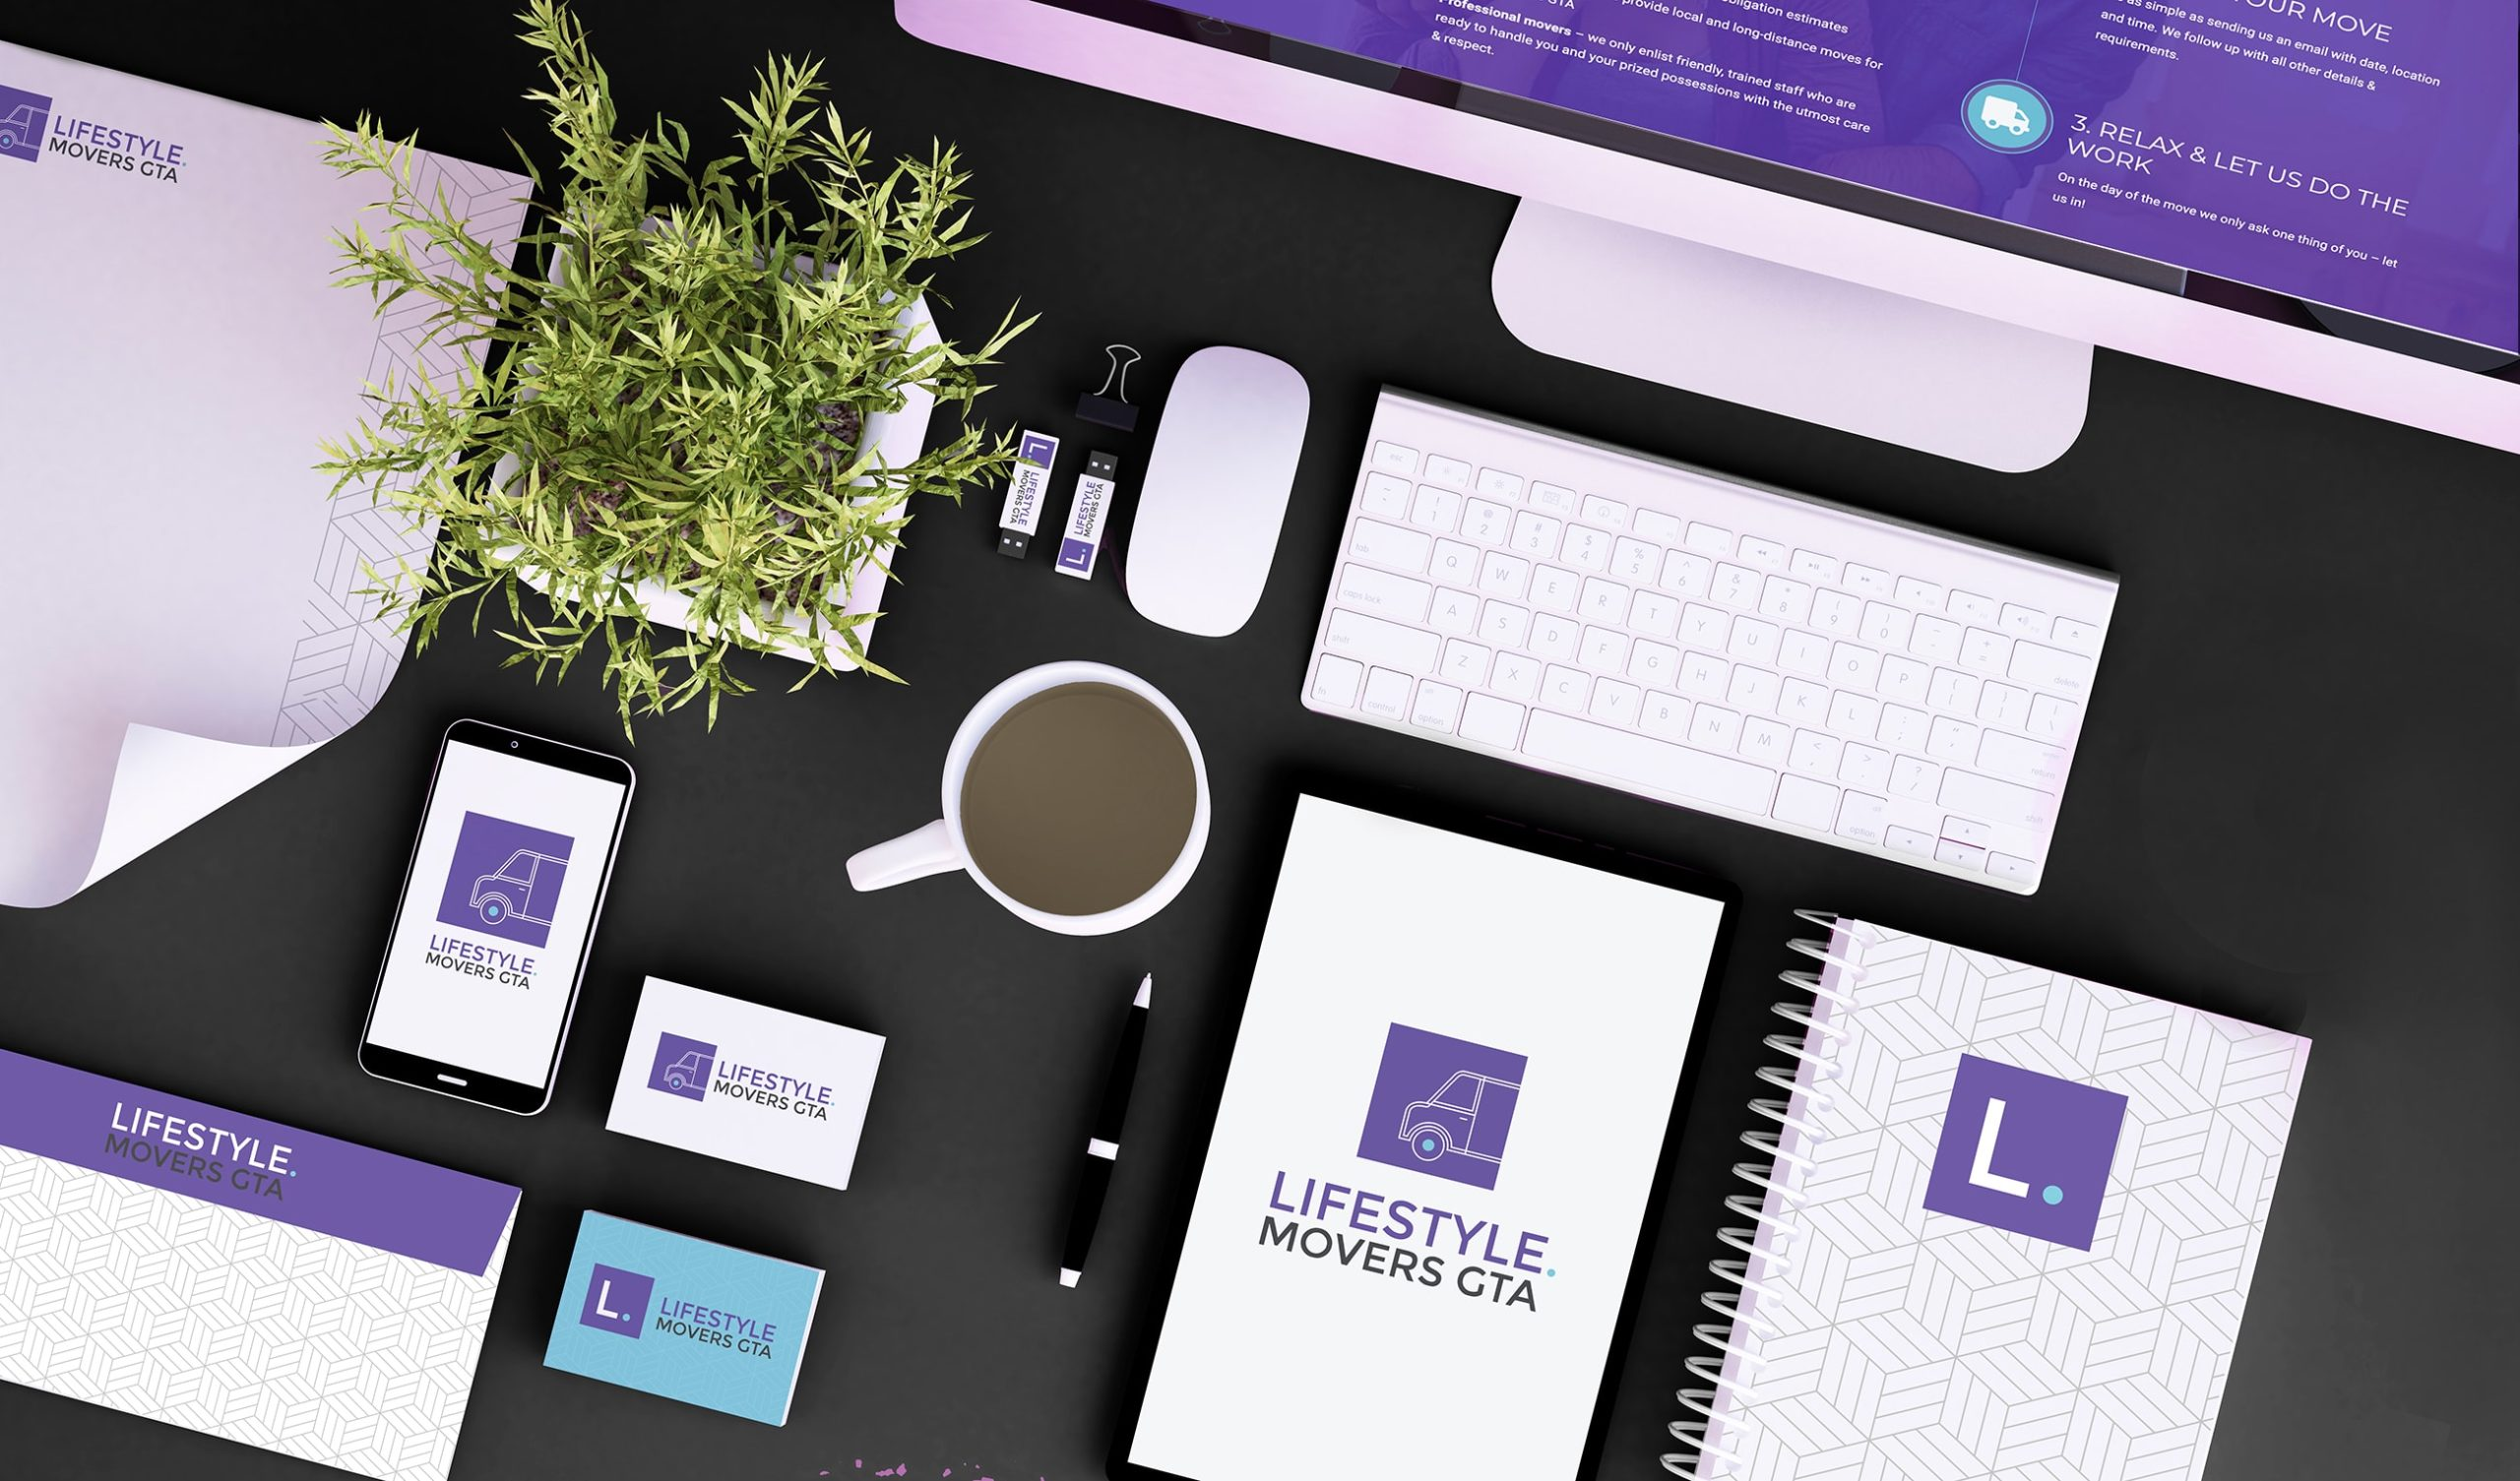 Brand Identity Design for Lifestyle Movers GTA